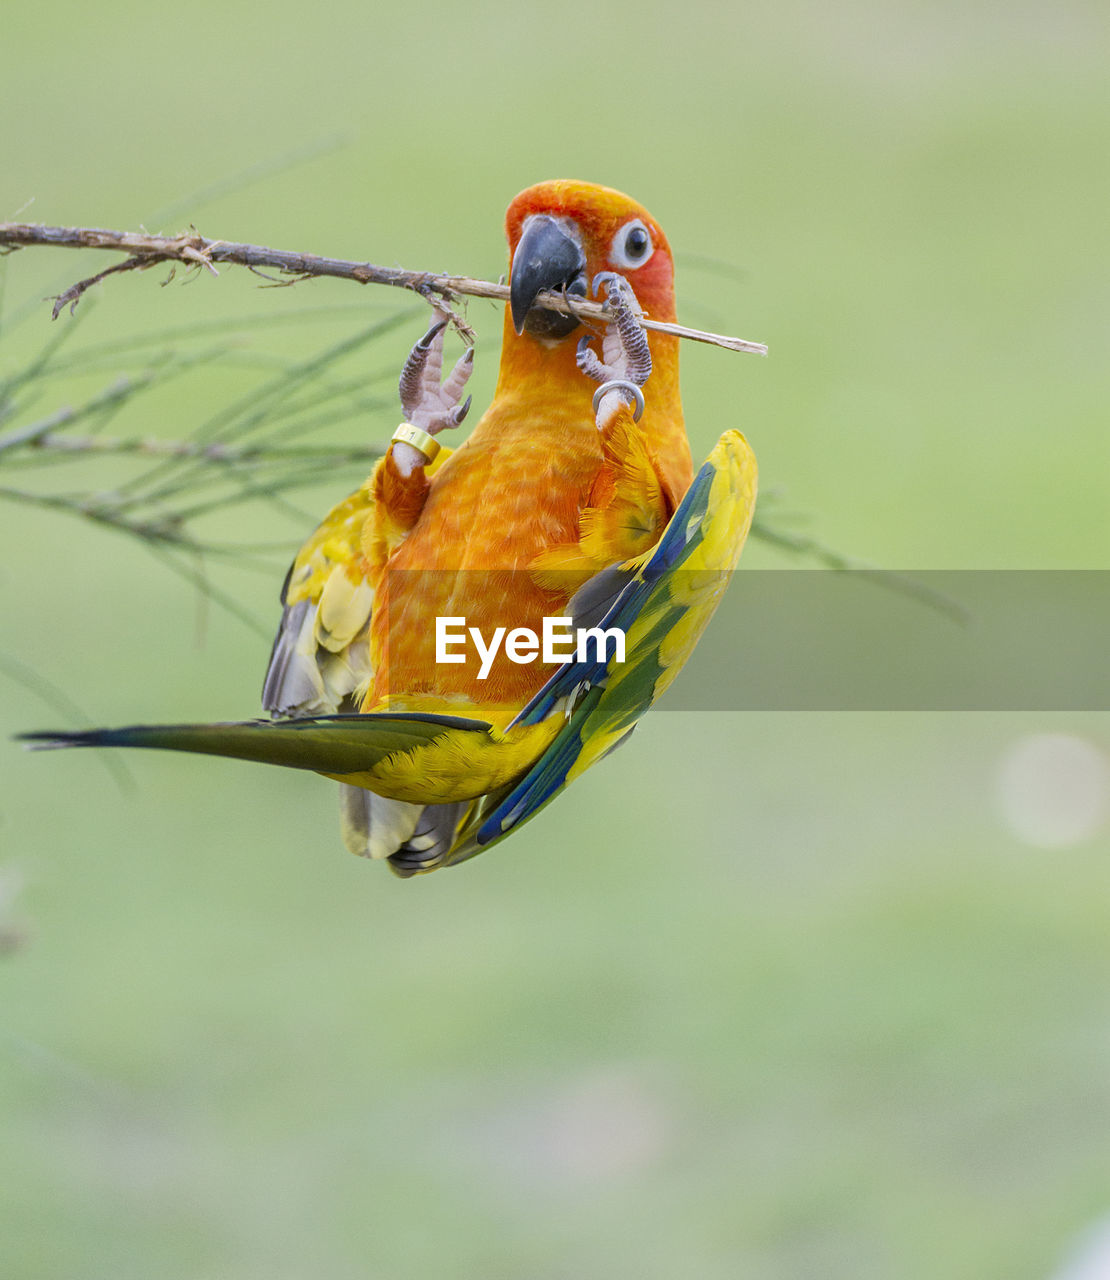 animal themes, animal, bird, animal wildlife, vertebrate, animals in the wild, one animal, perching, parrot, focus on foreground, no people, yellow, day, close-up, nature, outdoors, beauty in nature, orange color, macaw, multi colored